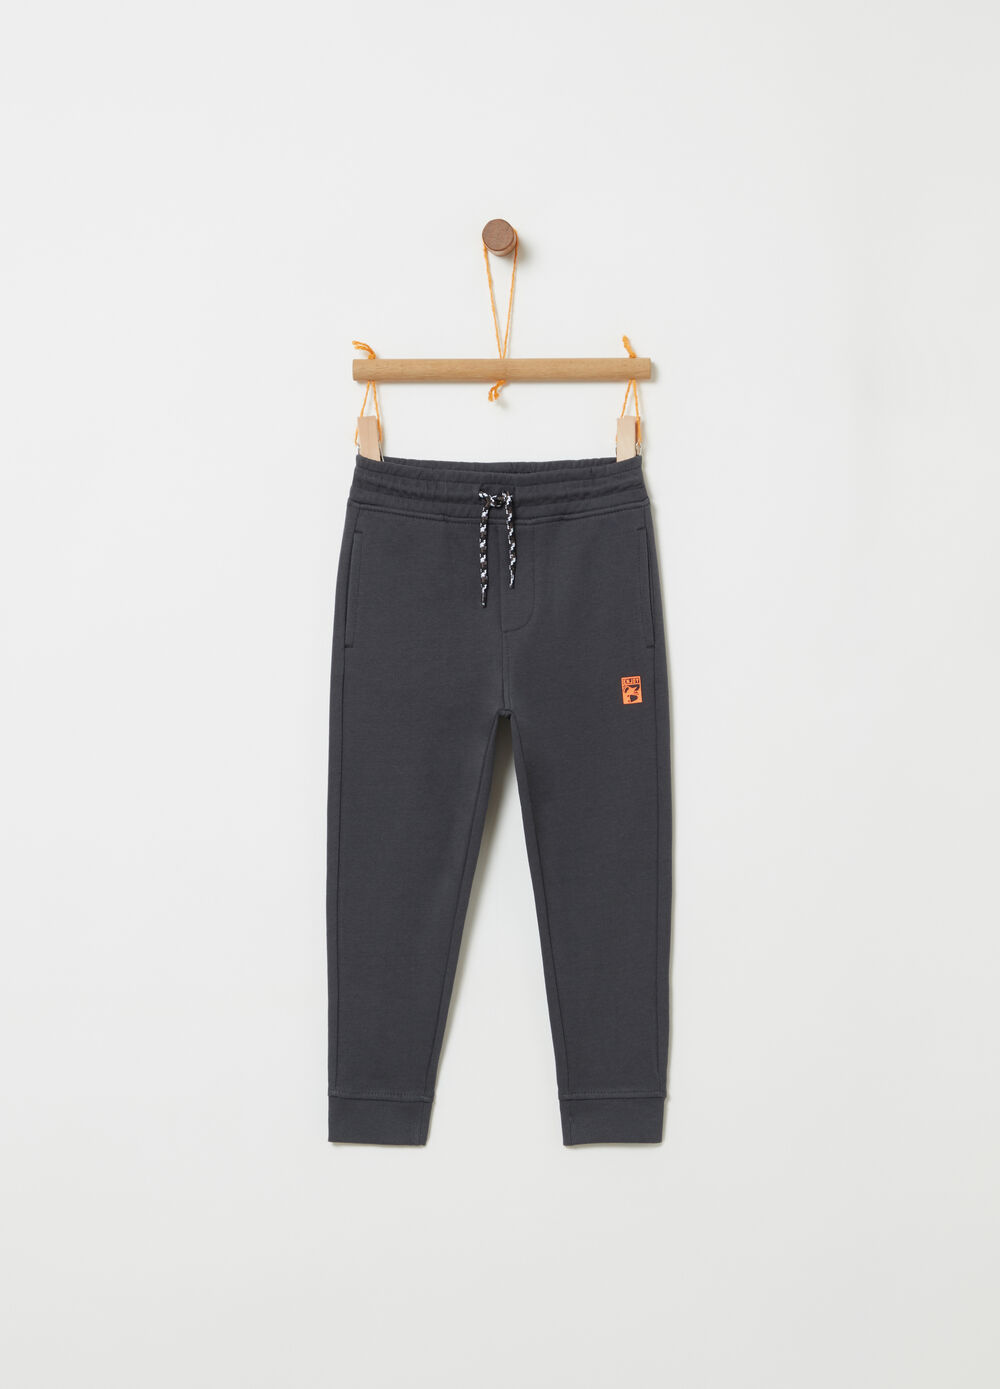 Lightweight fleece trousers with pockets